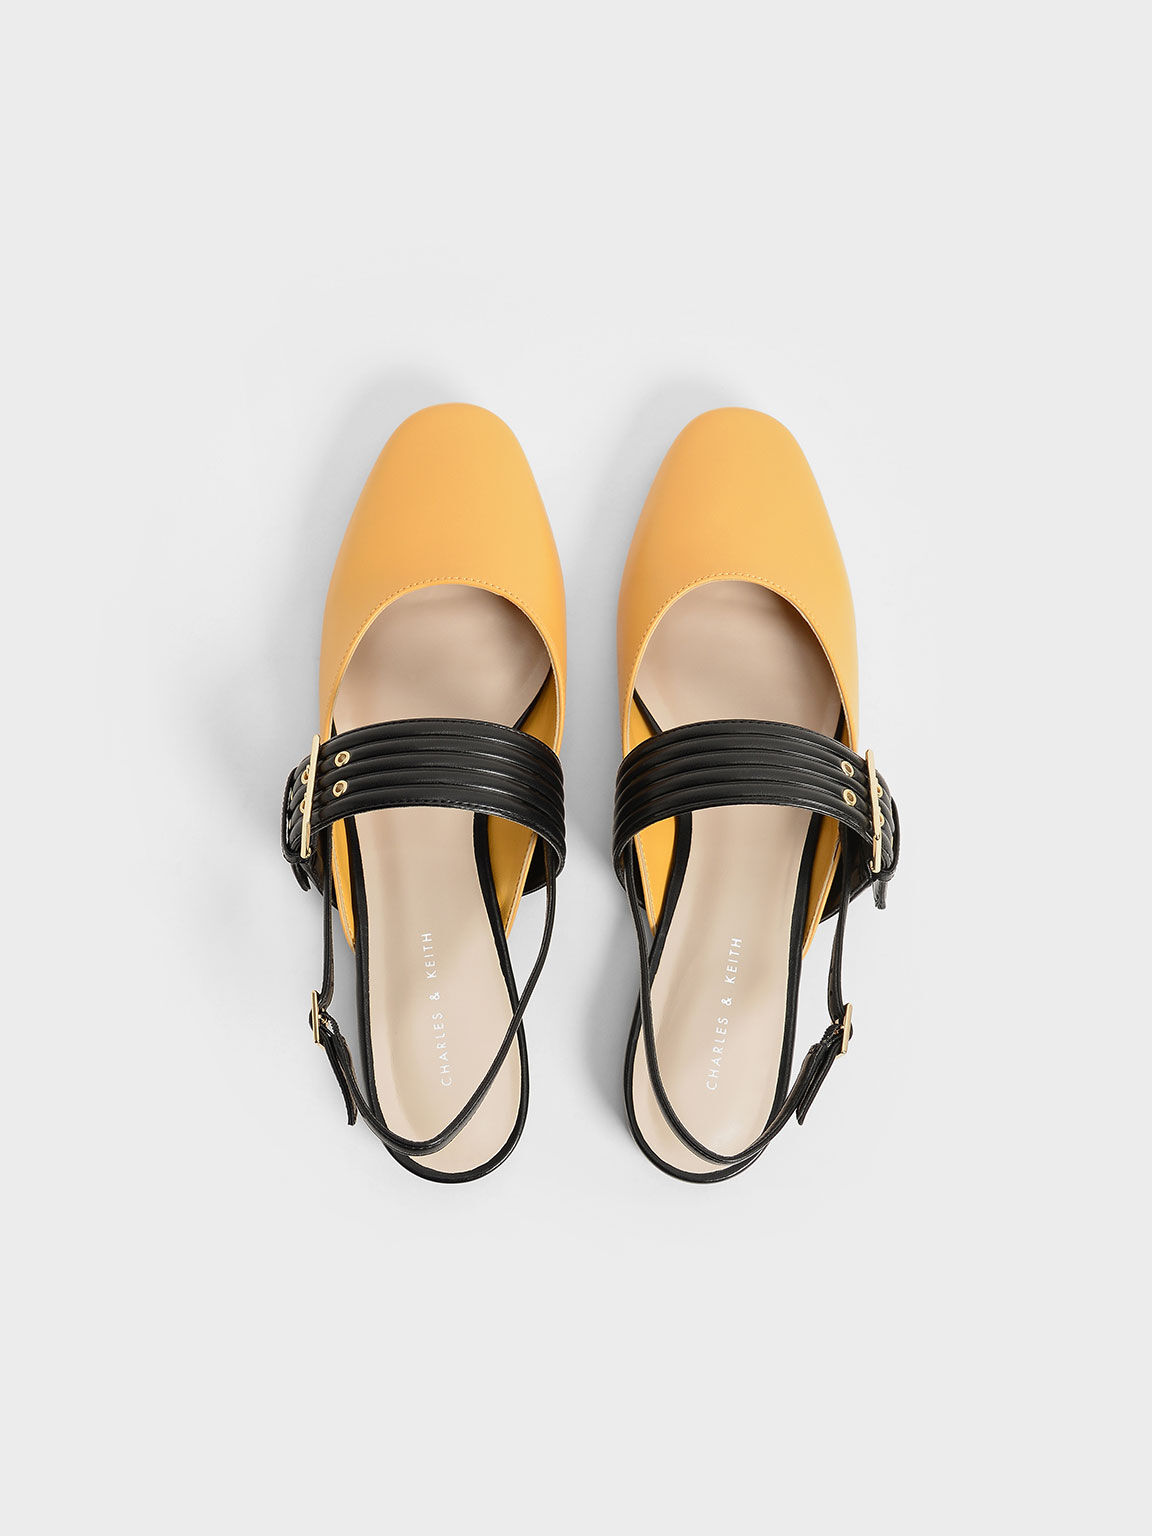 Grommet Strap Slingback Mary Janes, Yellow, hi-res